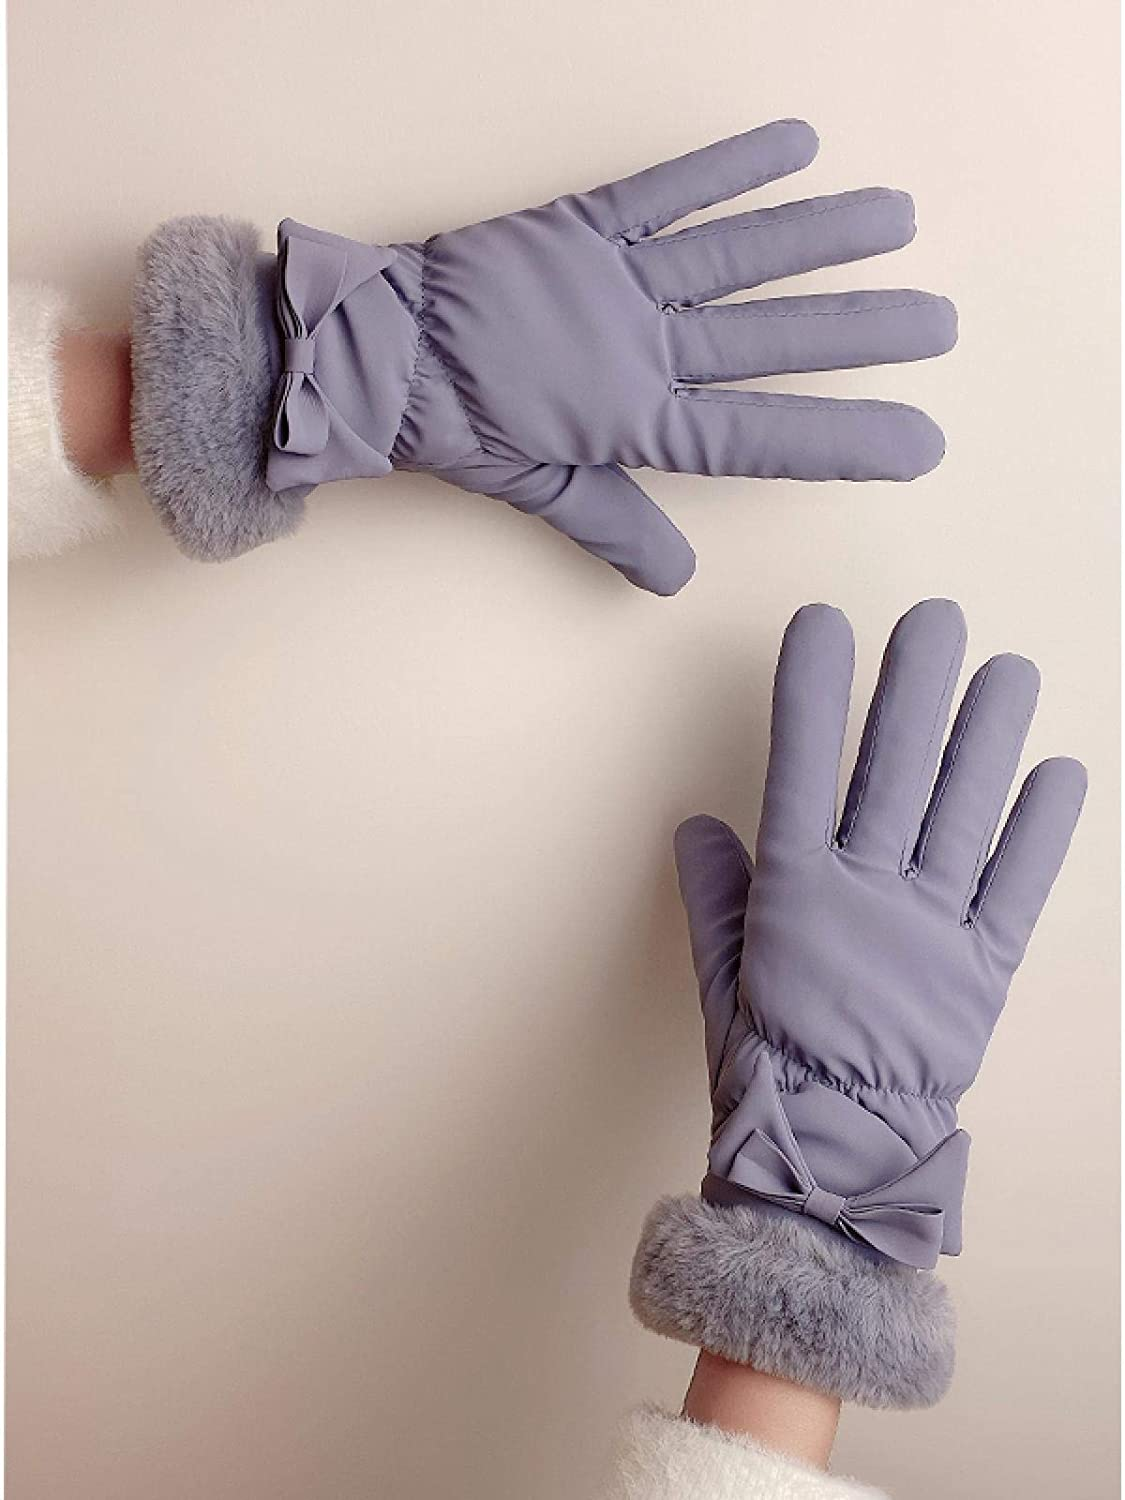 AMILIEe Gloves Winter Girl Student Plus Velvet Thick Down Cotton Cute Touch Screen Warm Windproof Waterproof Cycling Gloves 均码 FG大蝴蝶款【灰色】